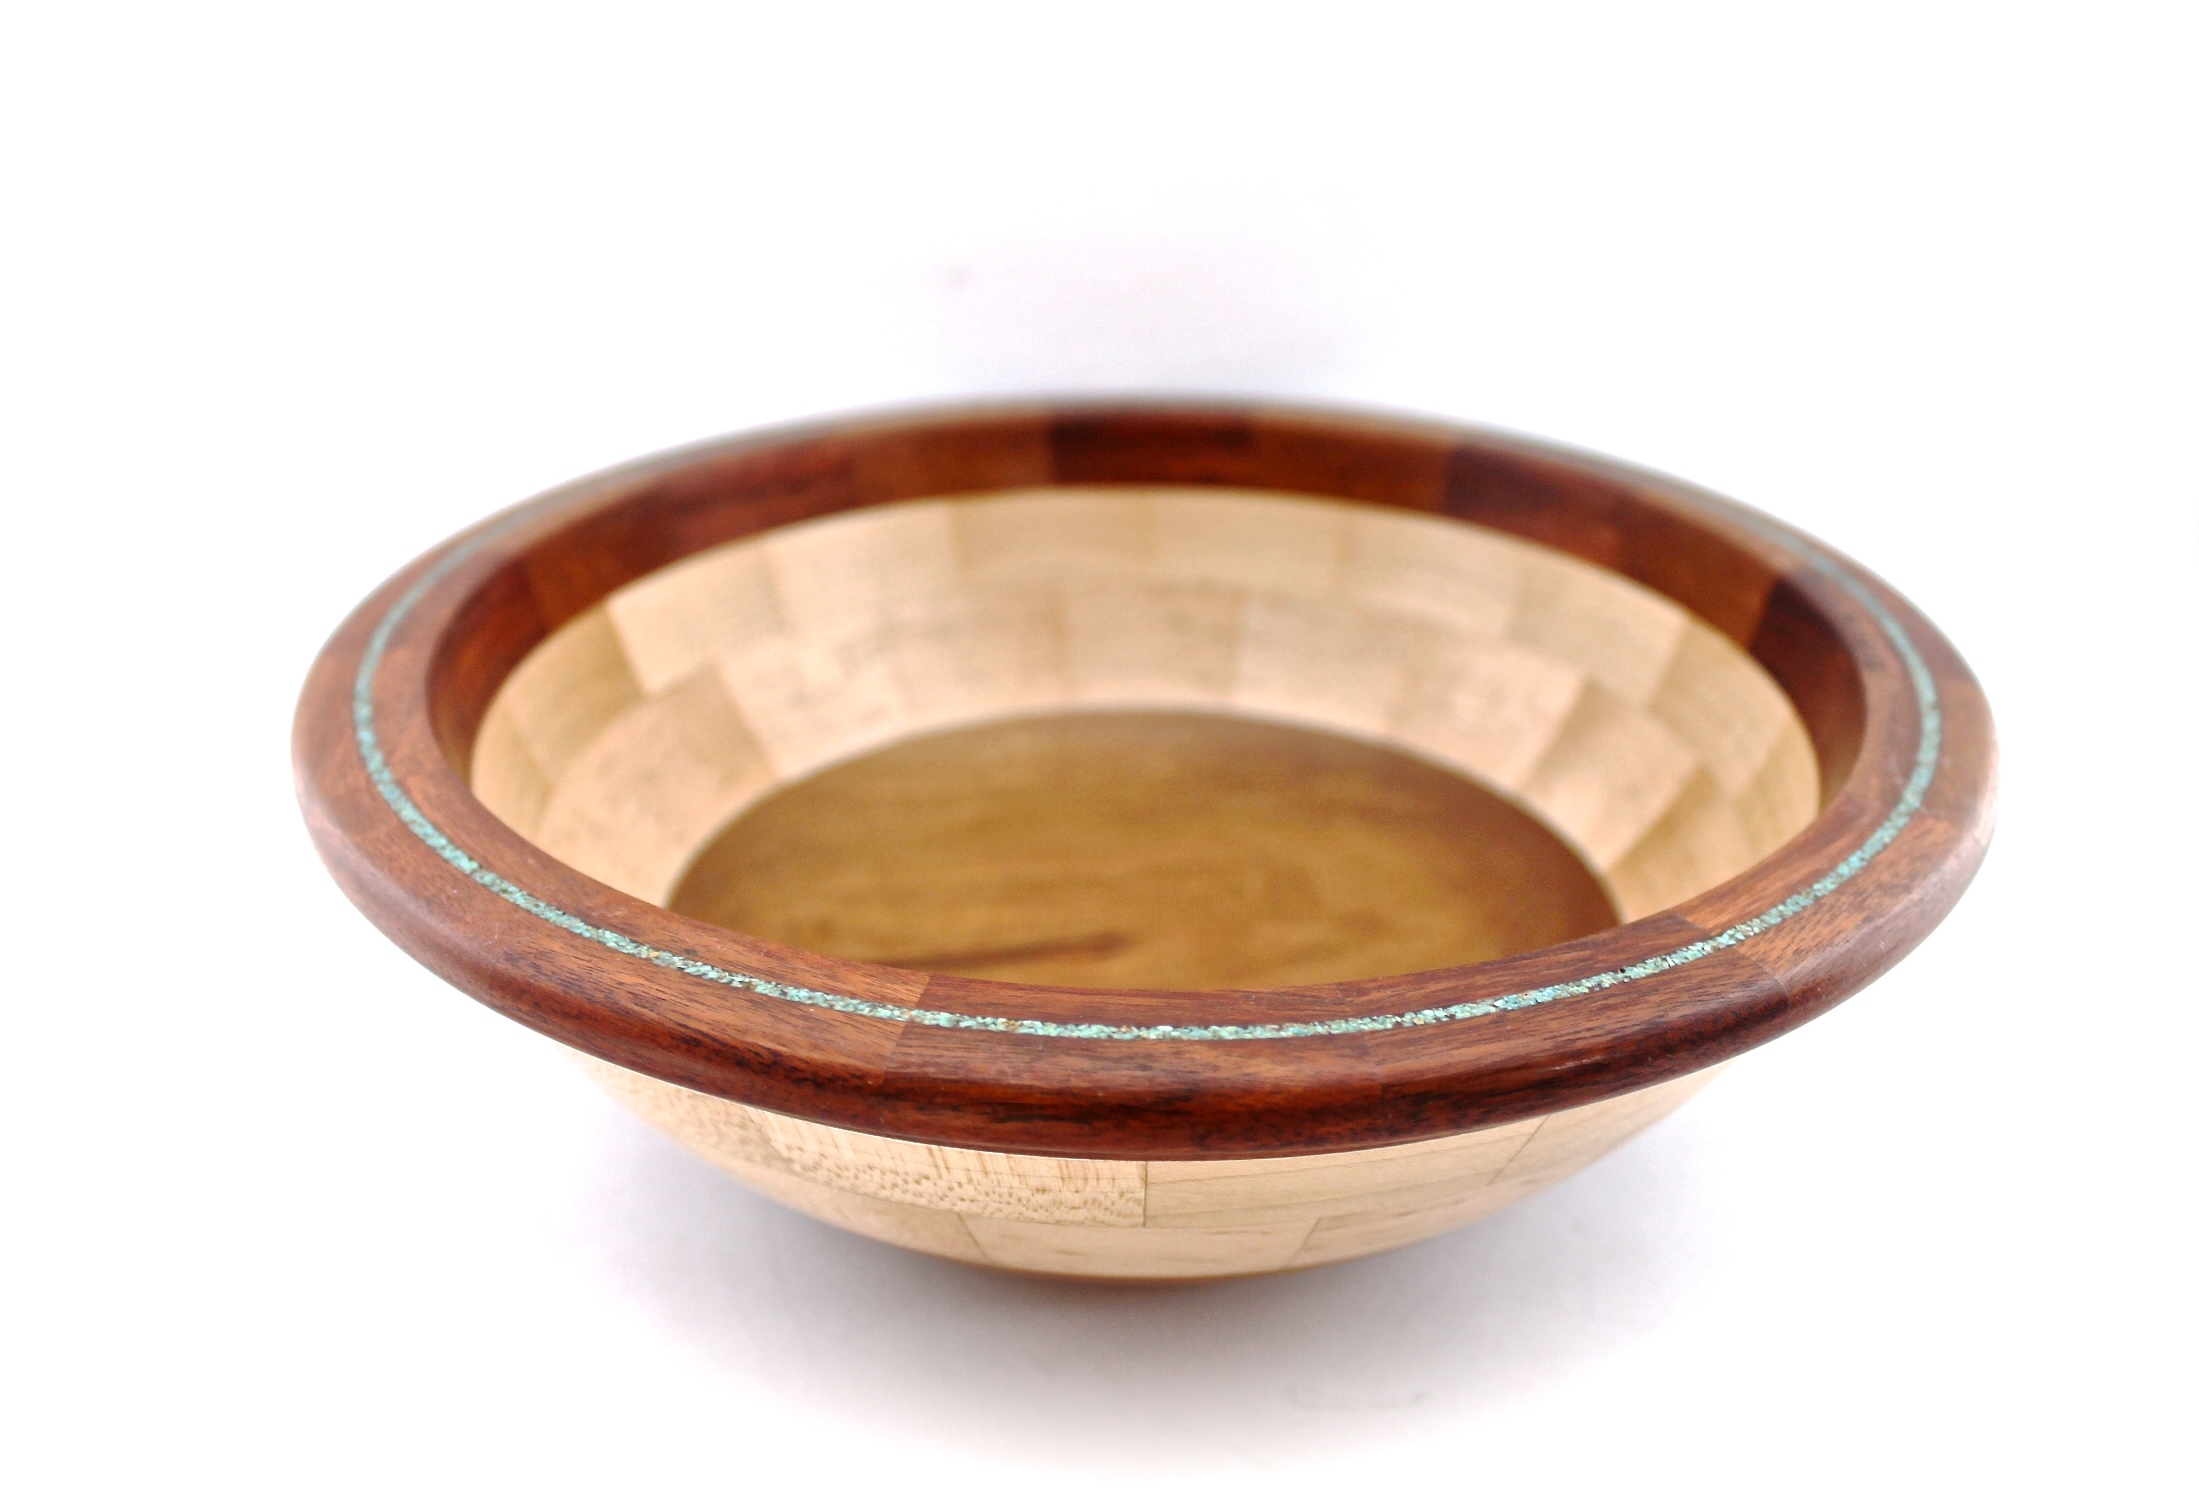 Chestnut + Maple + Turquoise Inlay Bowl